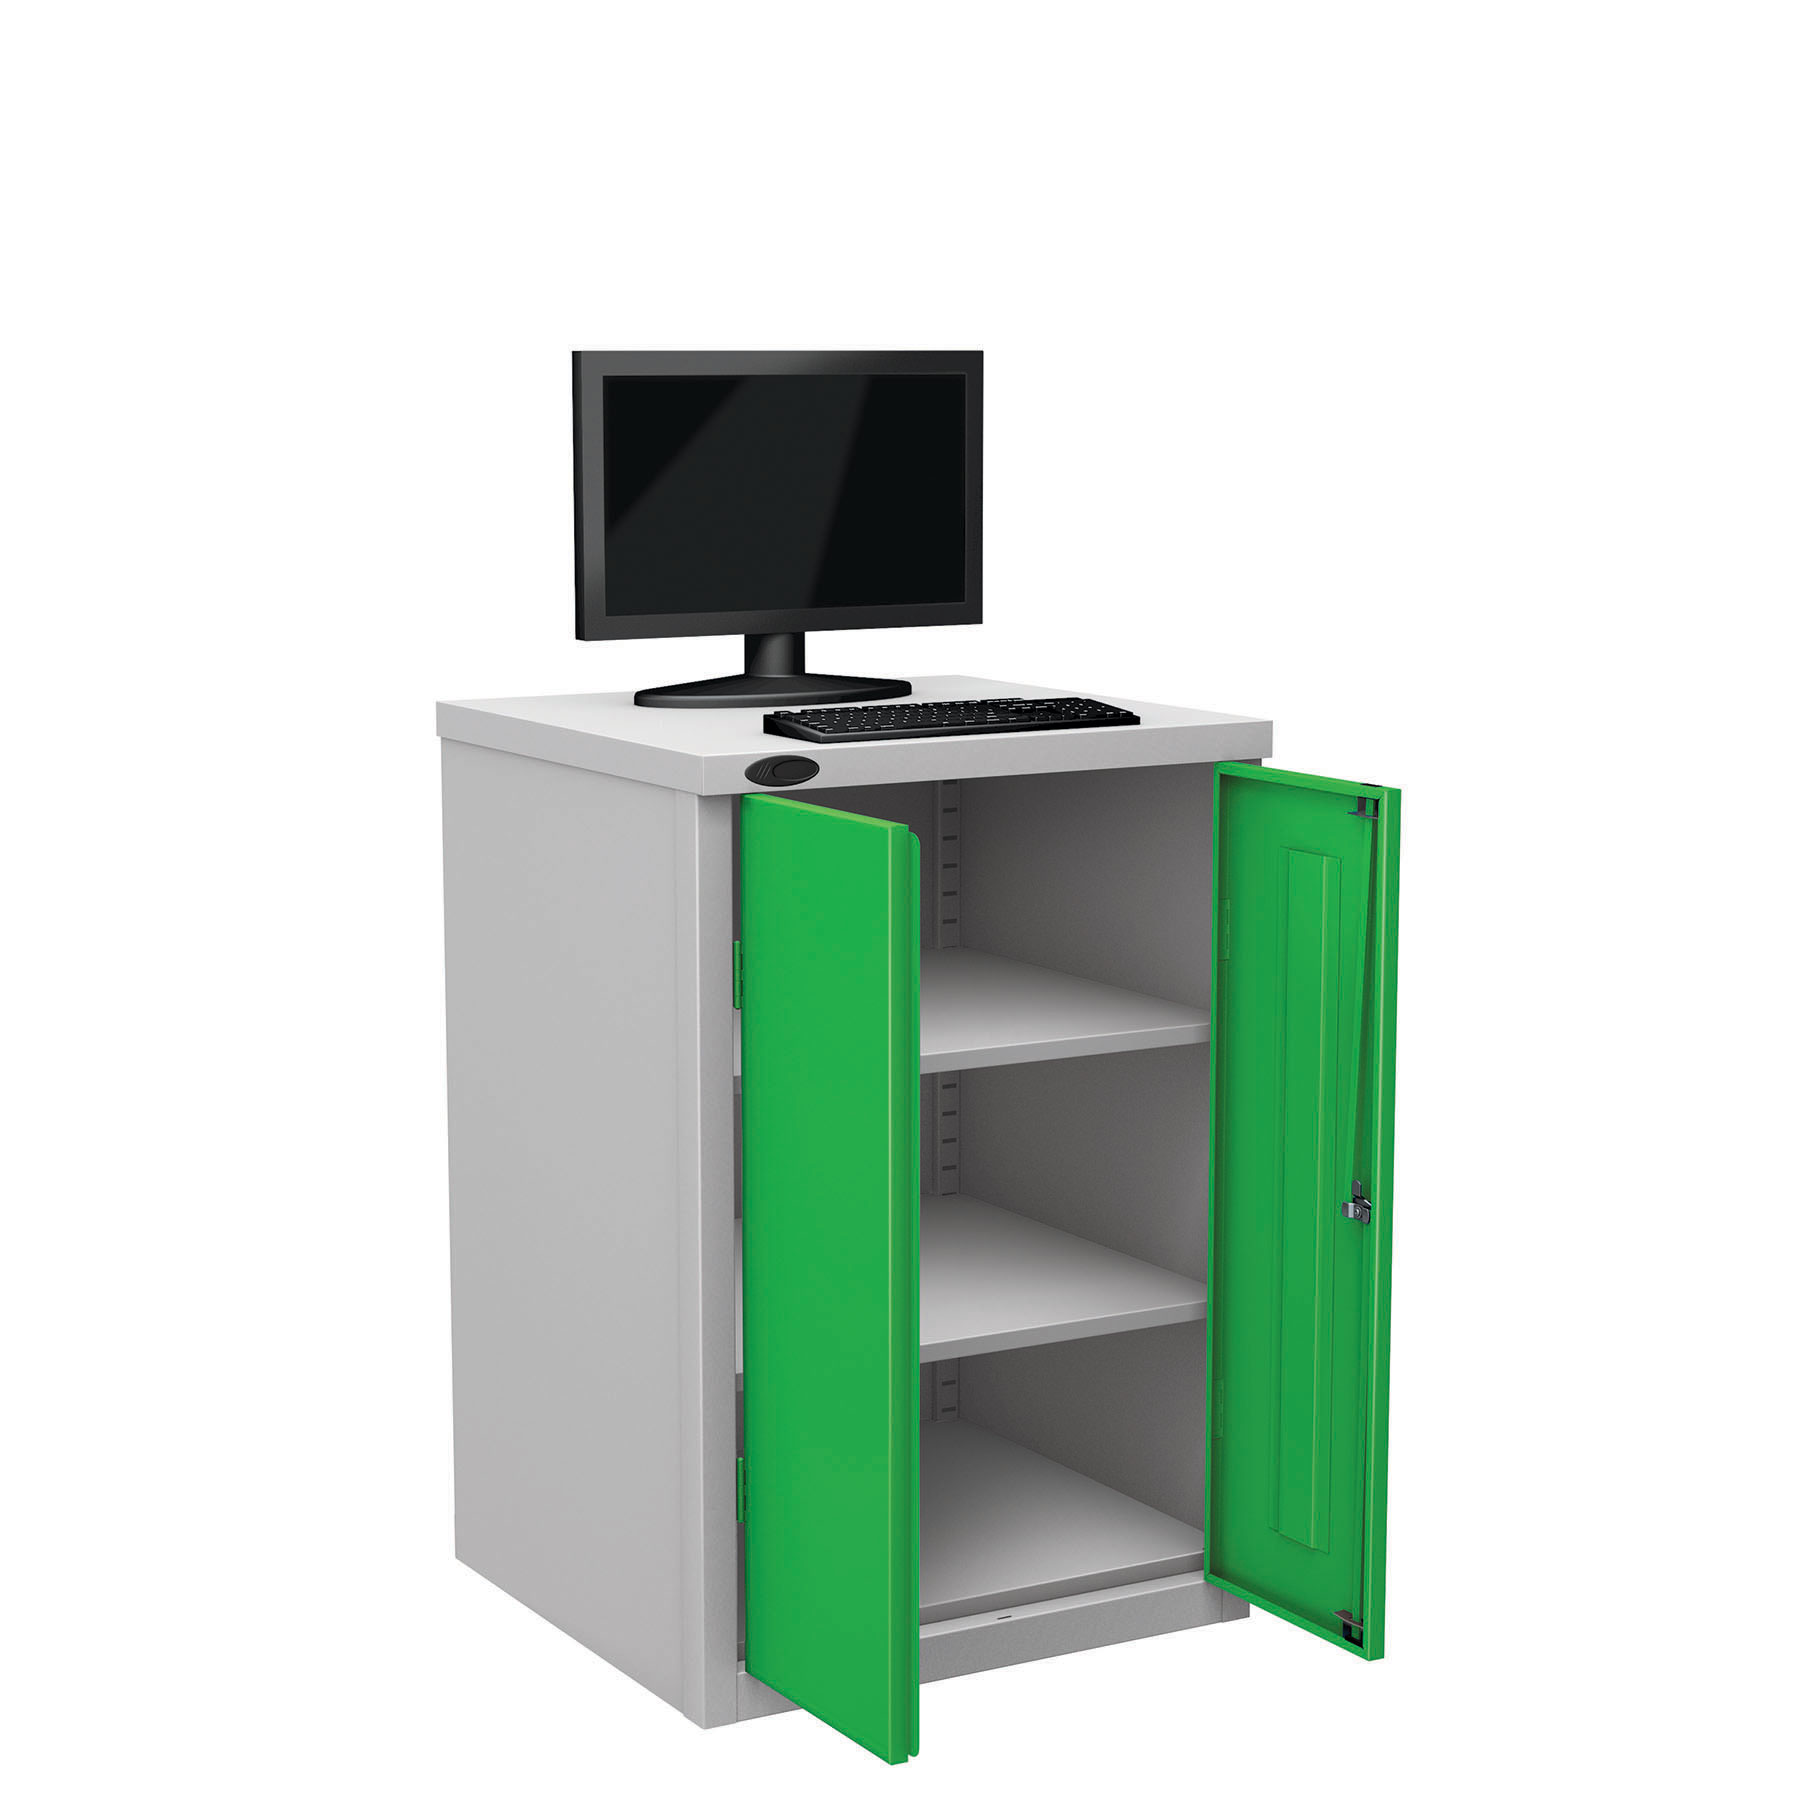 Probe workstation base monitor green